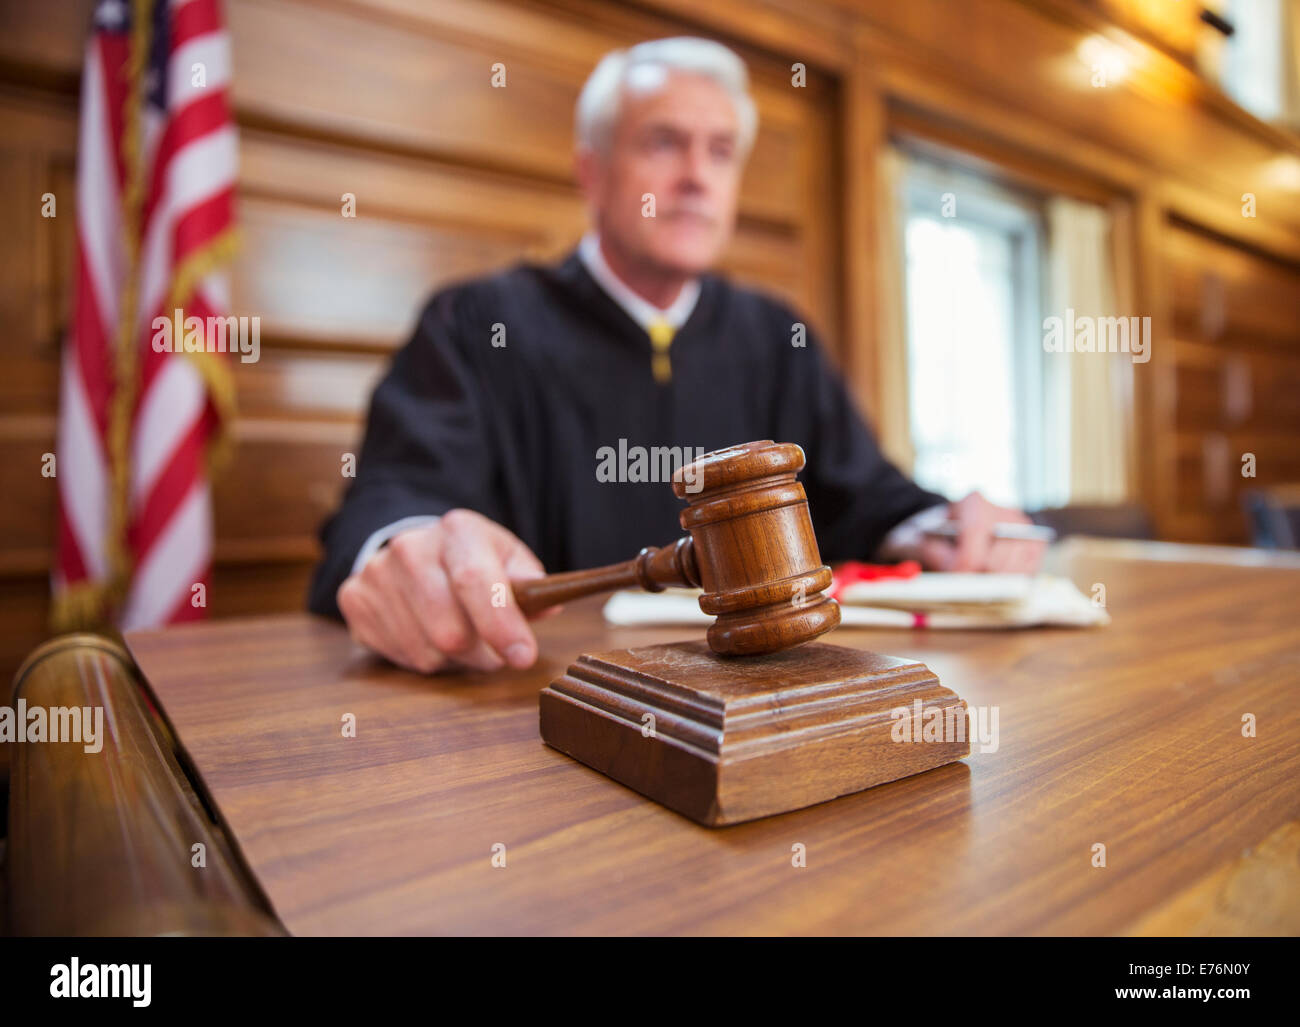 Judge holding gavel in court - Stock Image